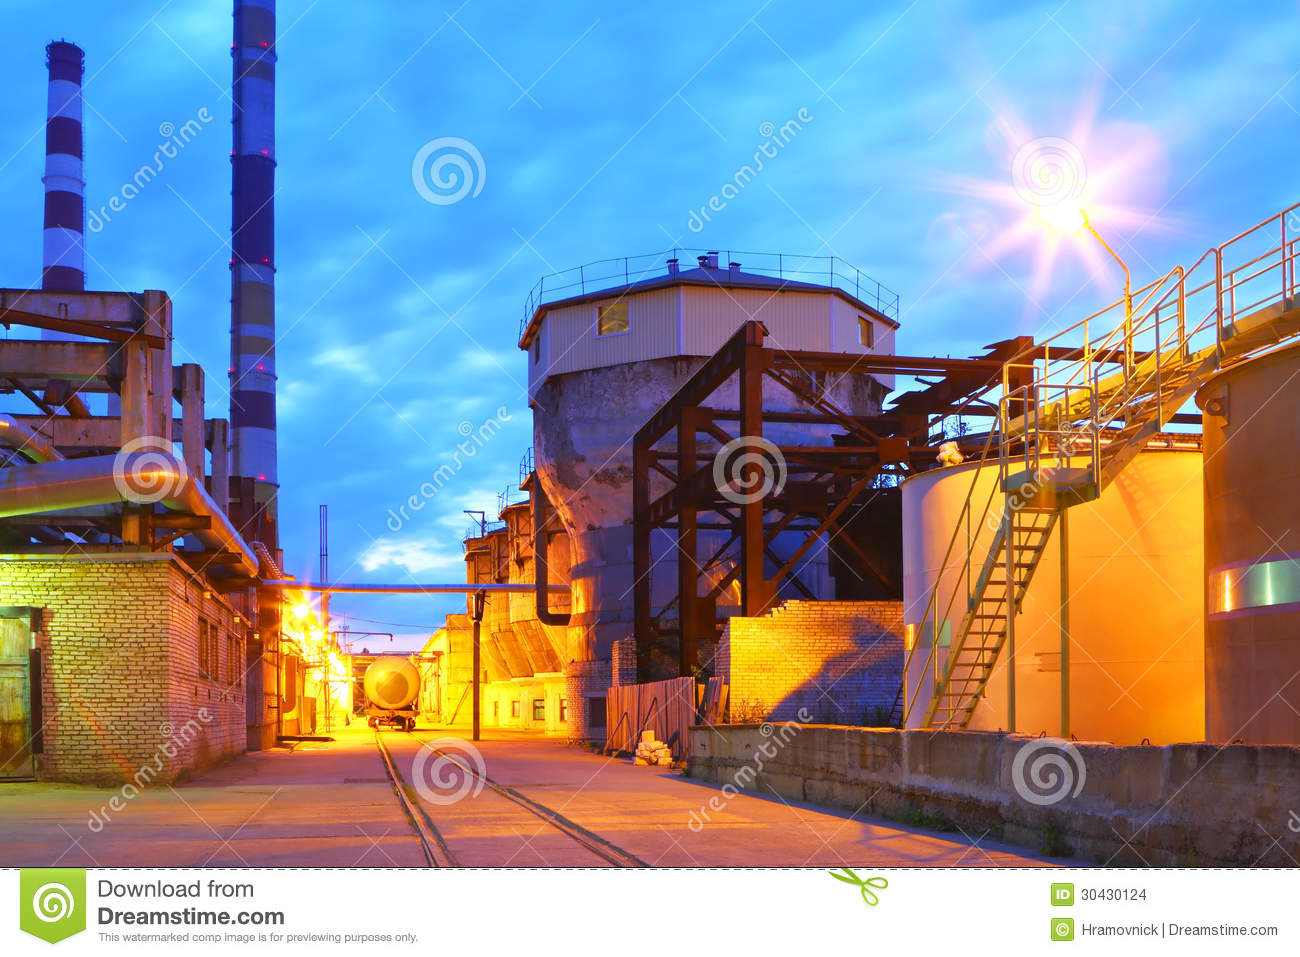 petrochemical-plant-night-time-lighting-